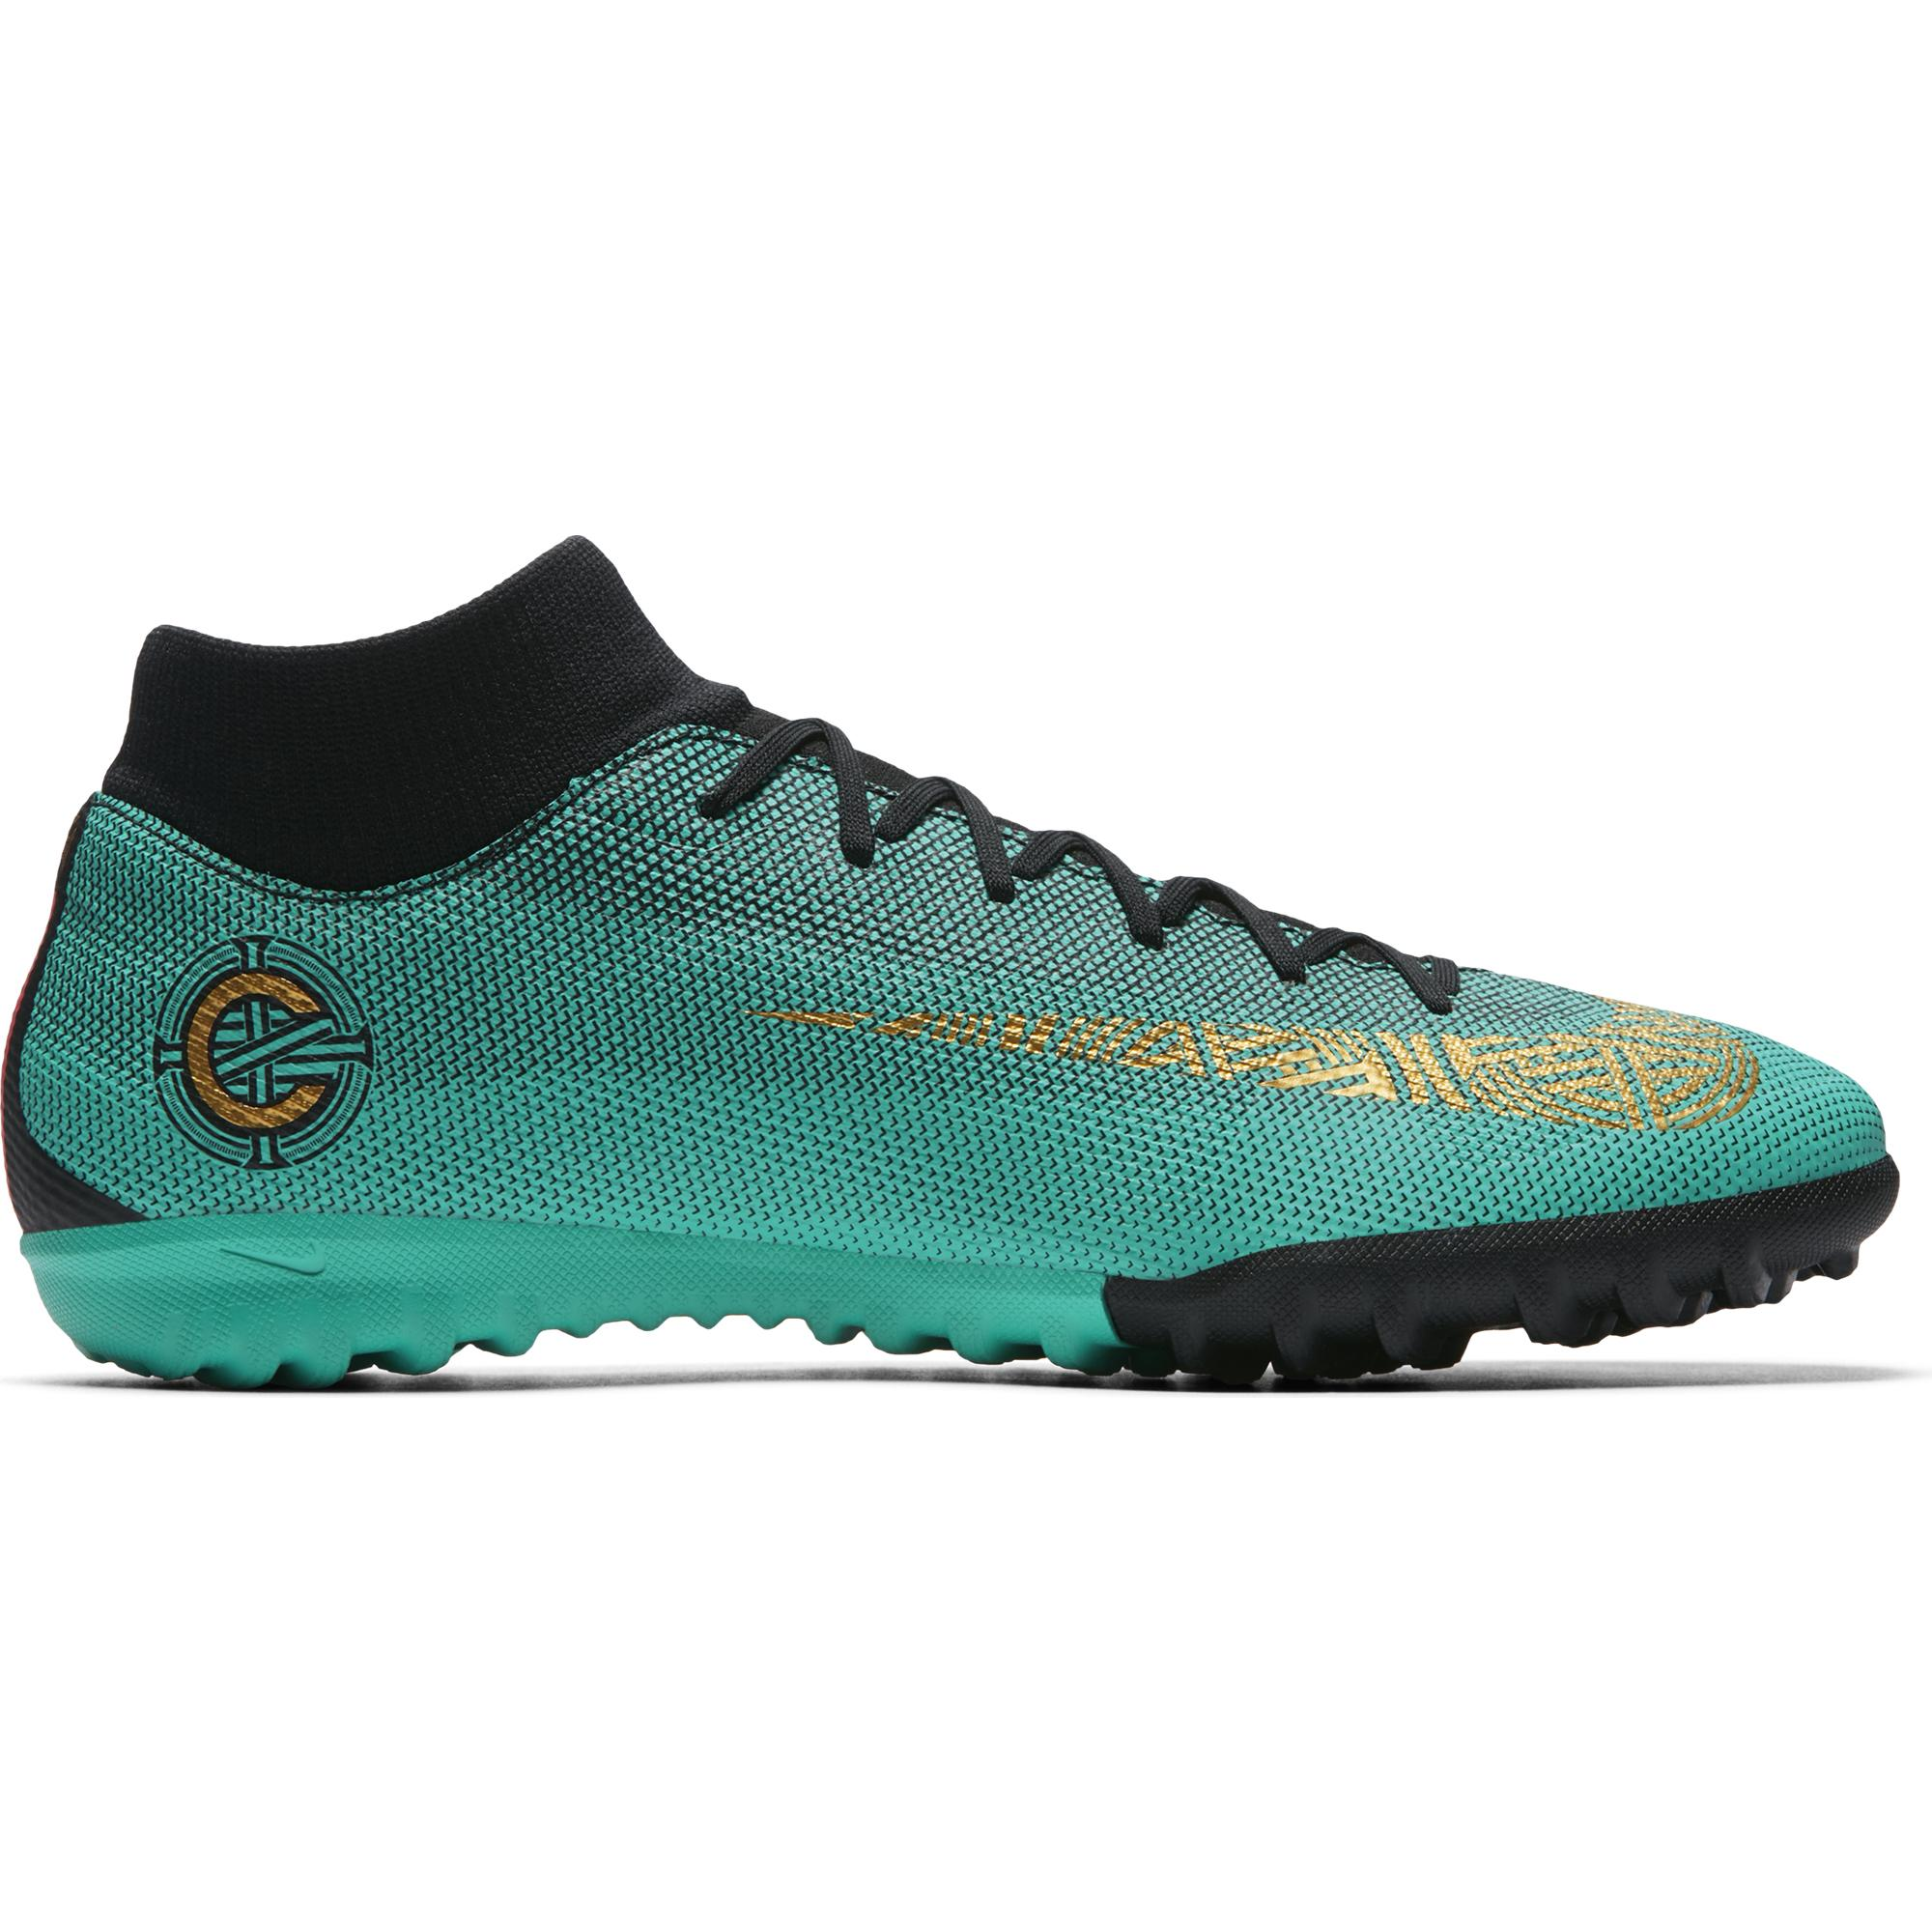 Cr7 6 Scarpe Tf Superflyx Calcetto Academy Nike WIHY92ED